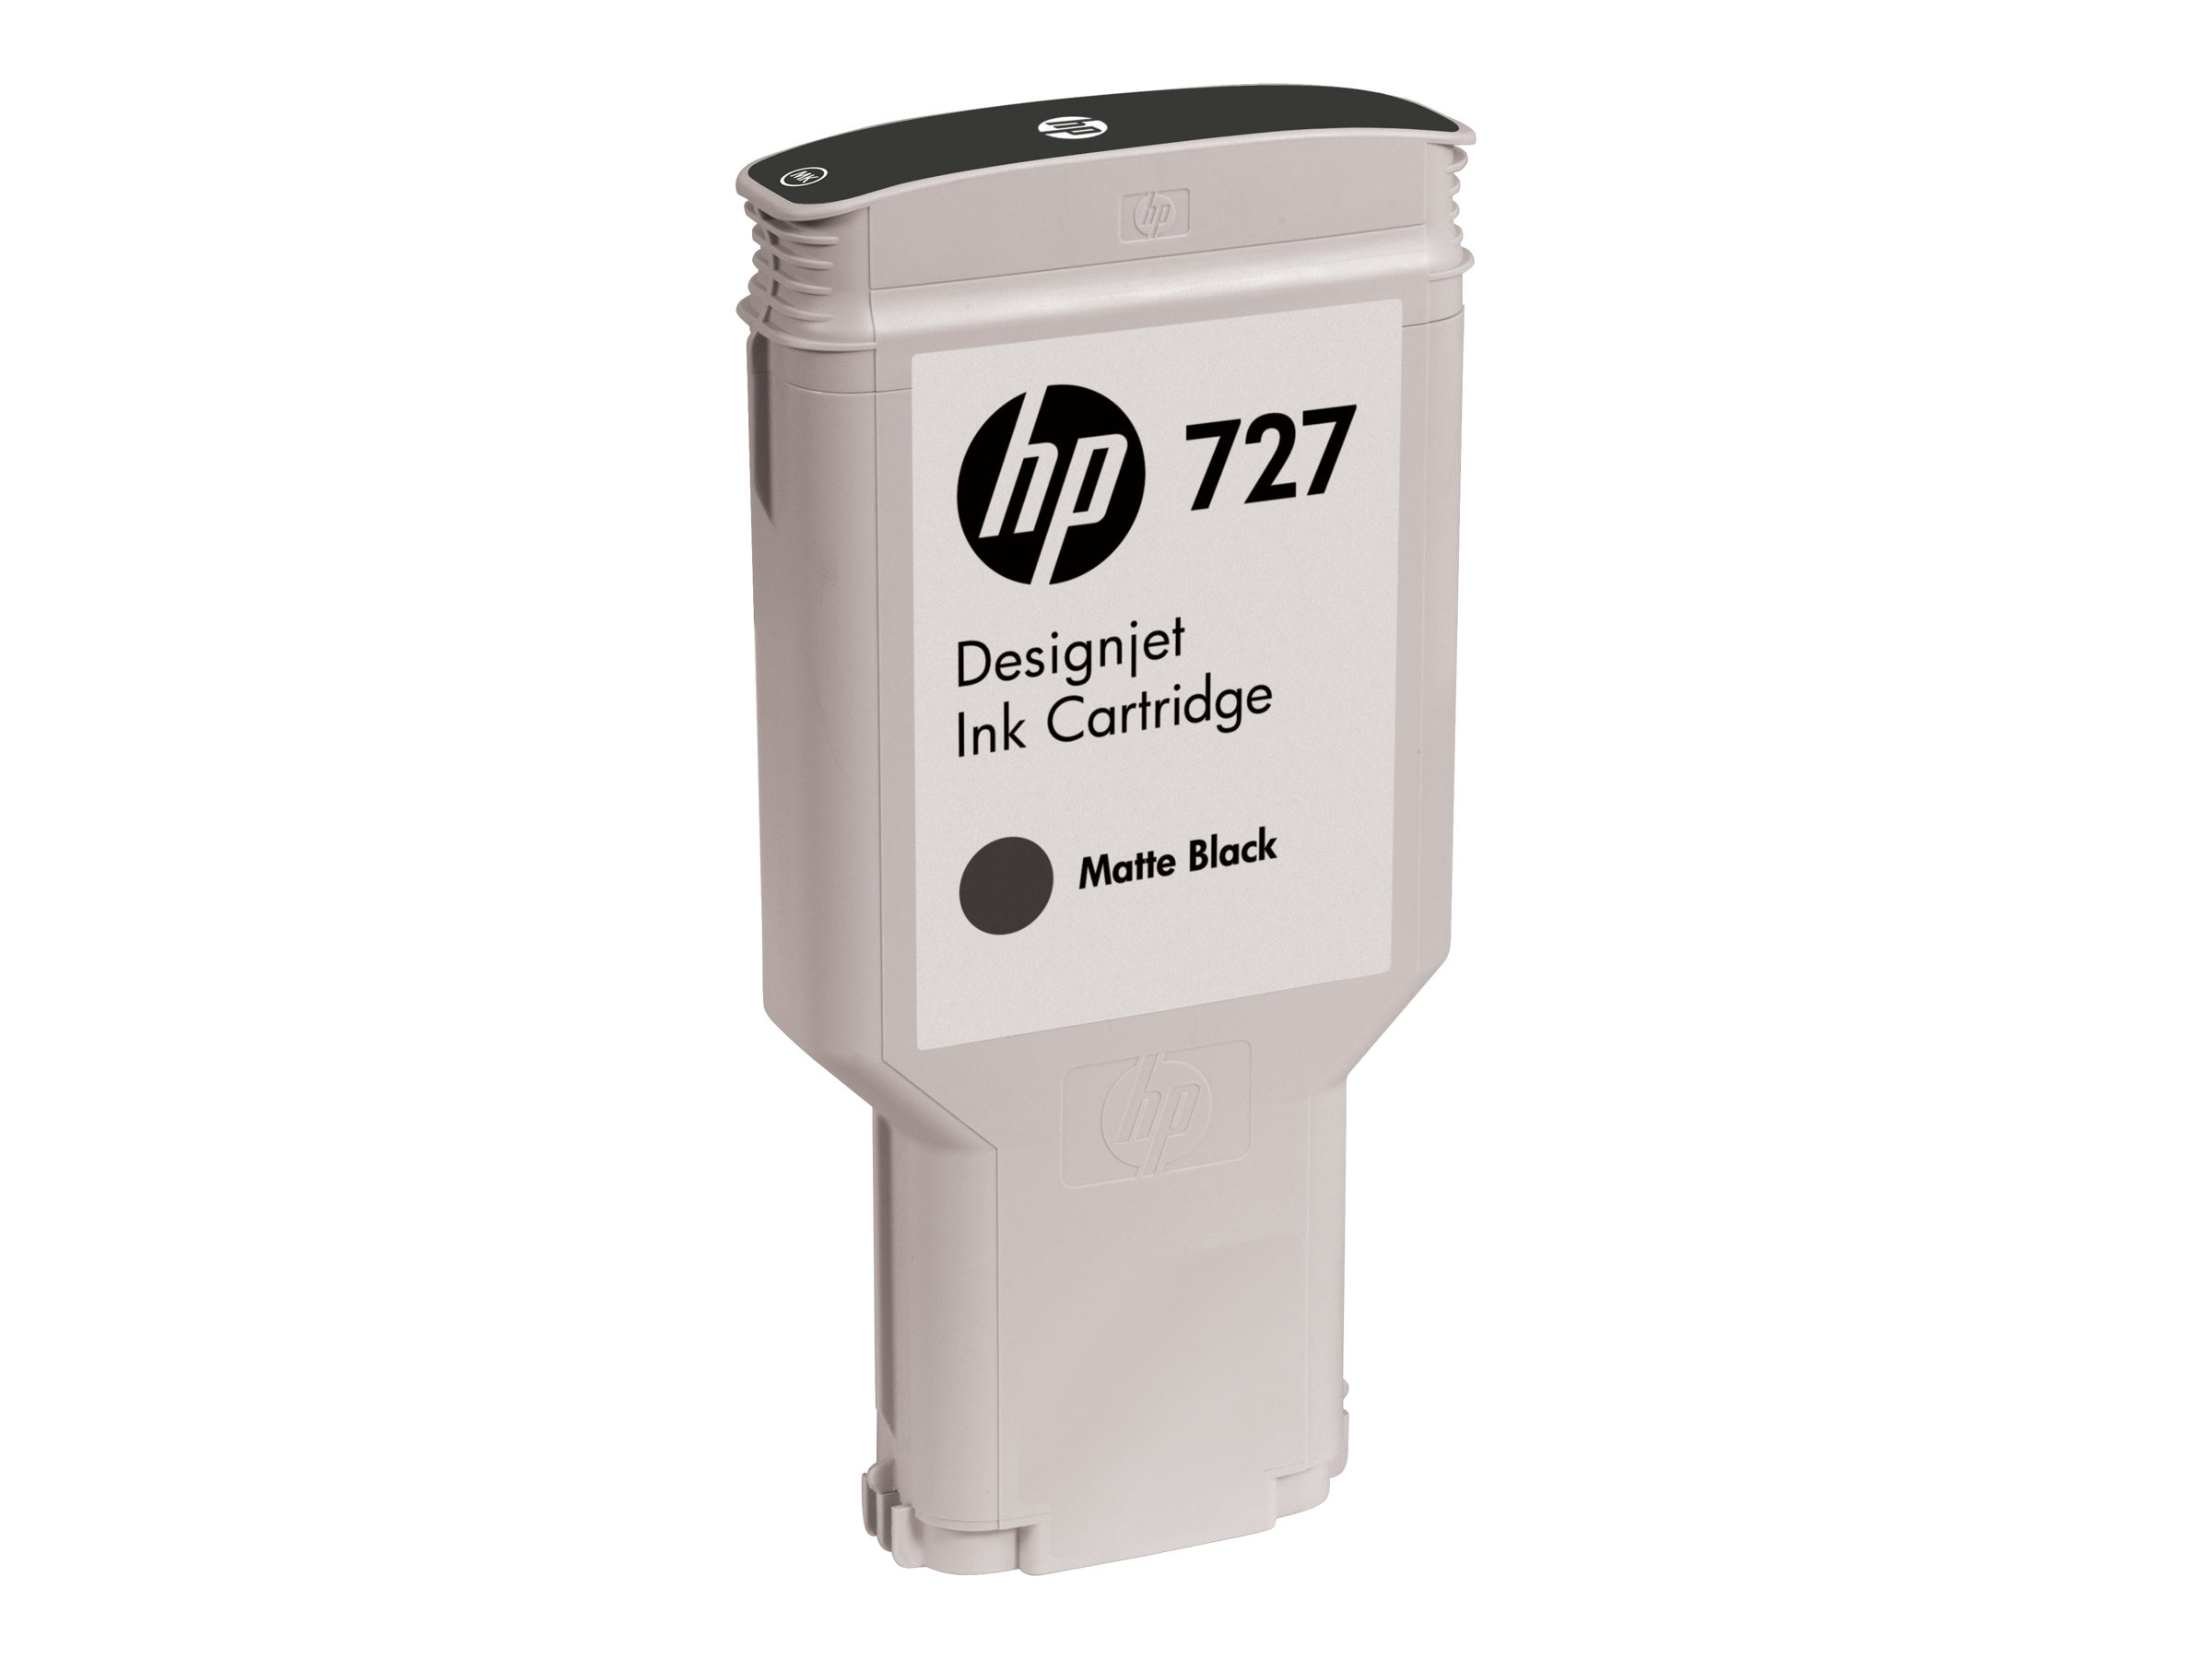 HP Inc. C1Q12A Image 2